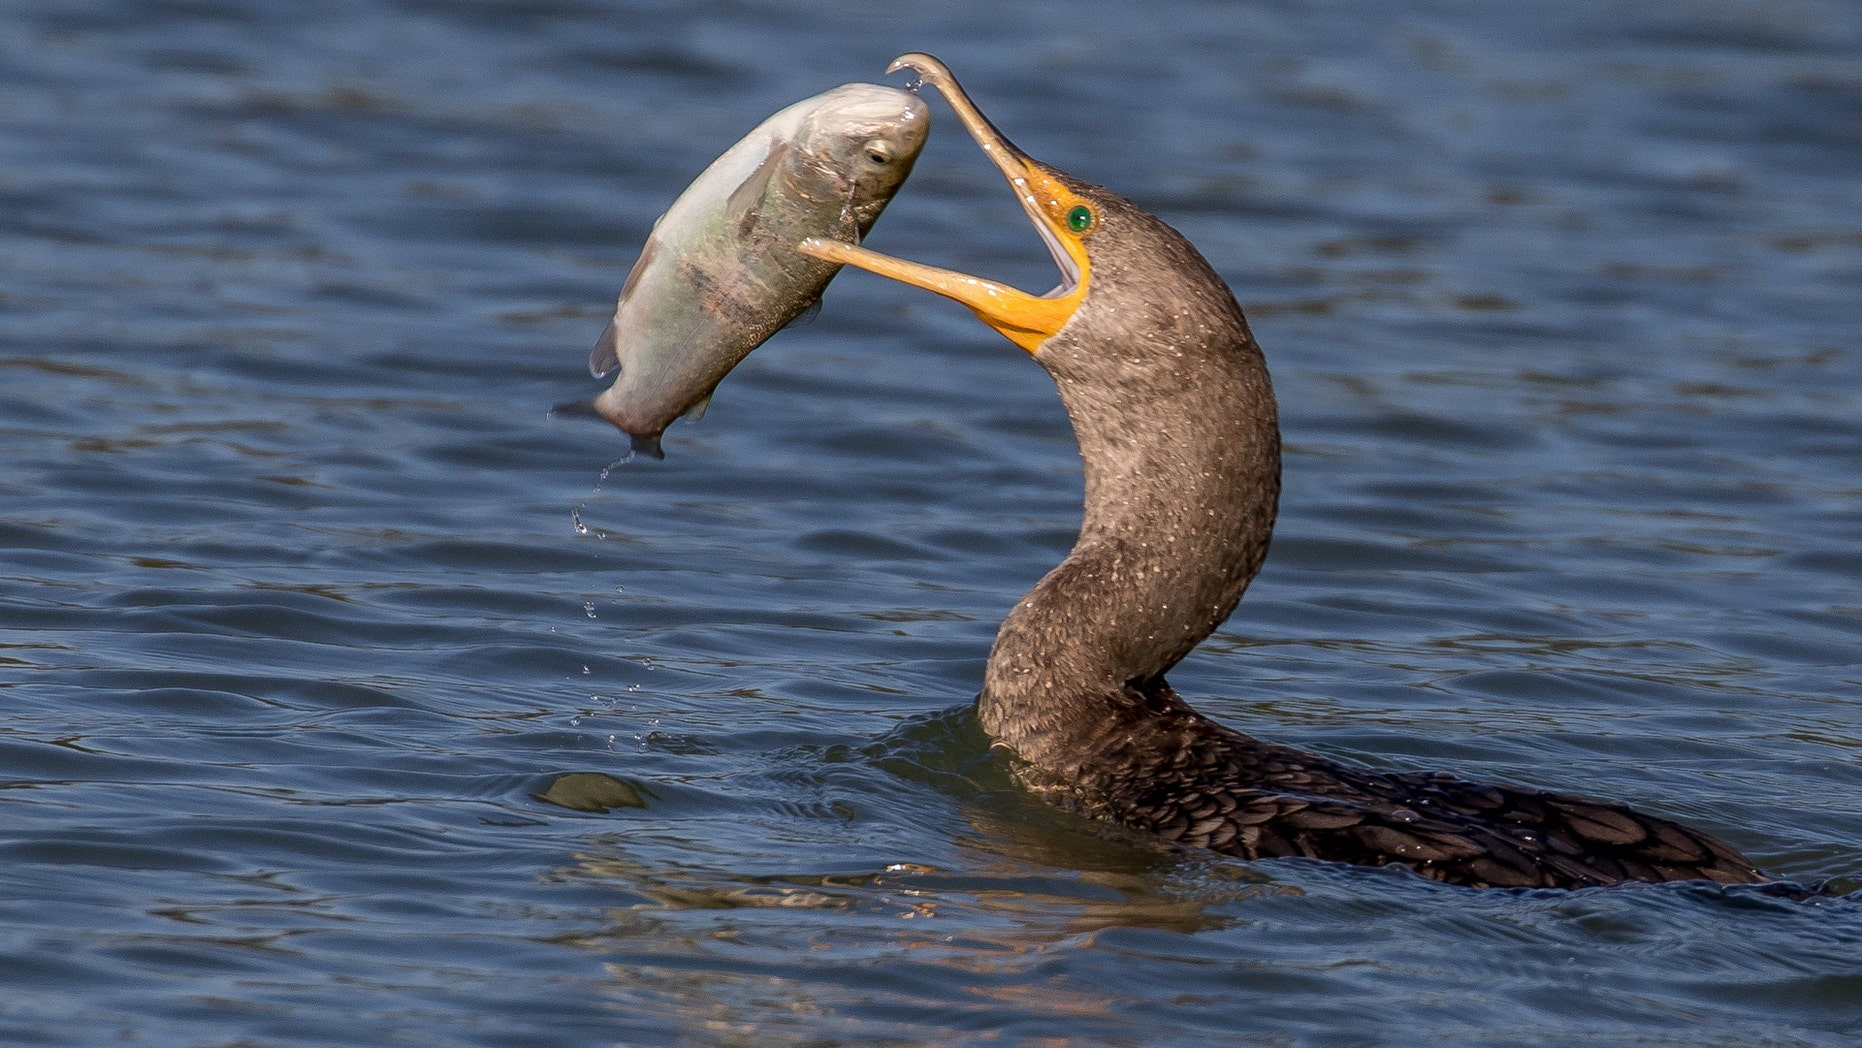 The cormorant struggles to swallow the catfish.